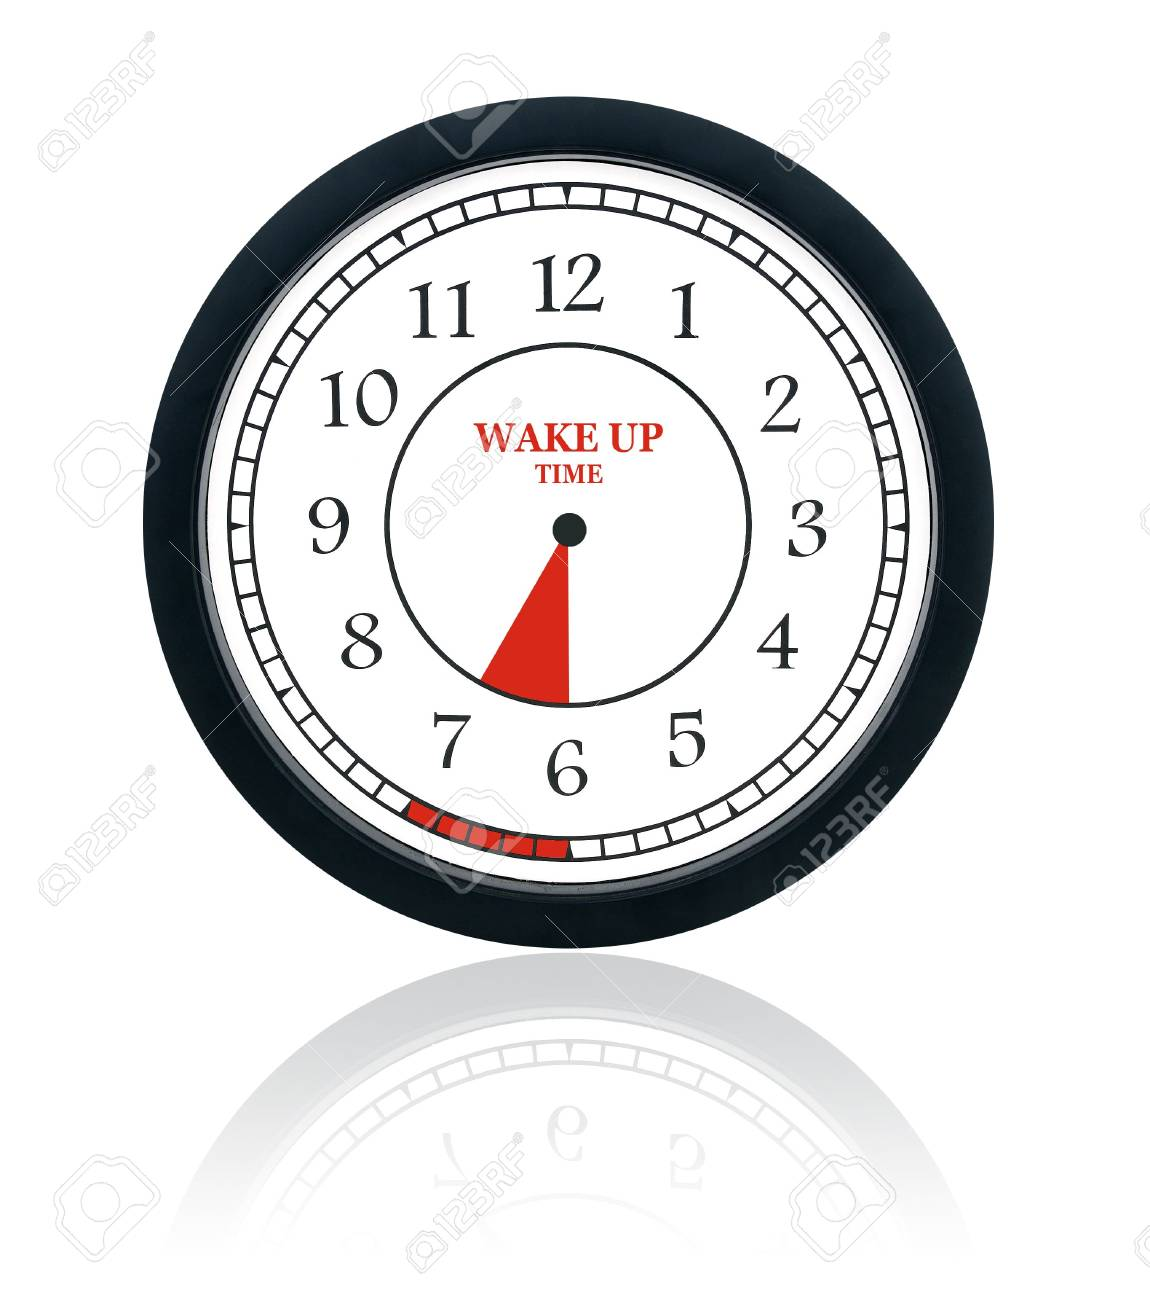 Wake up time Stock Photo - 2379638